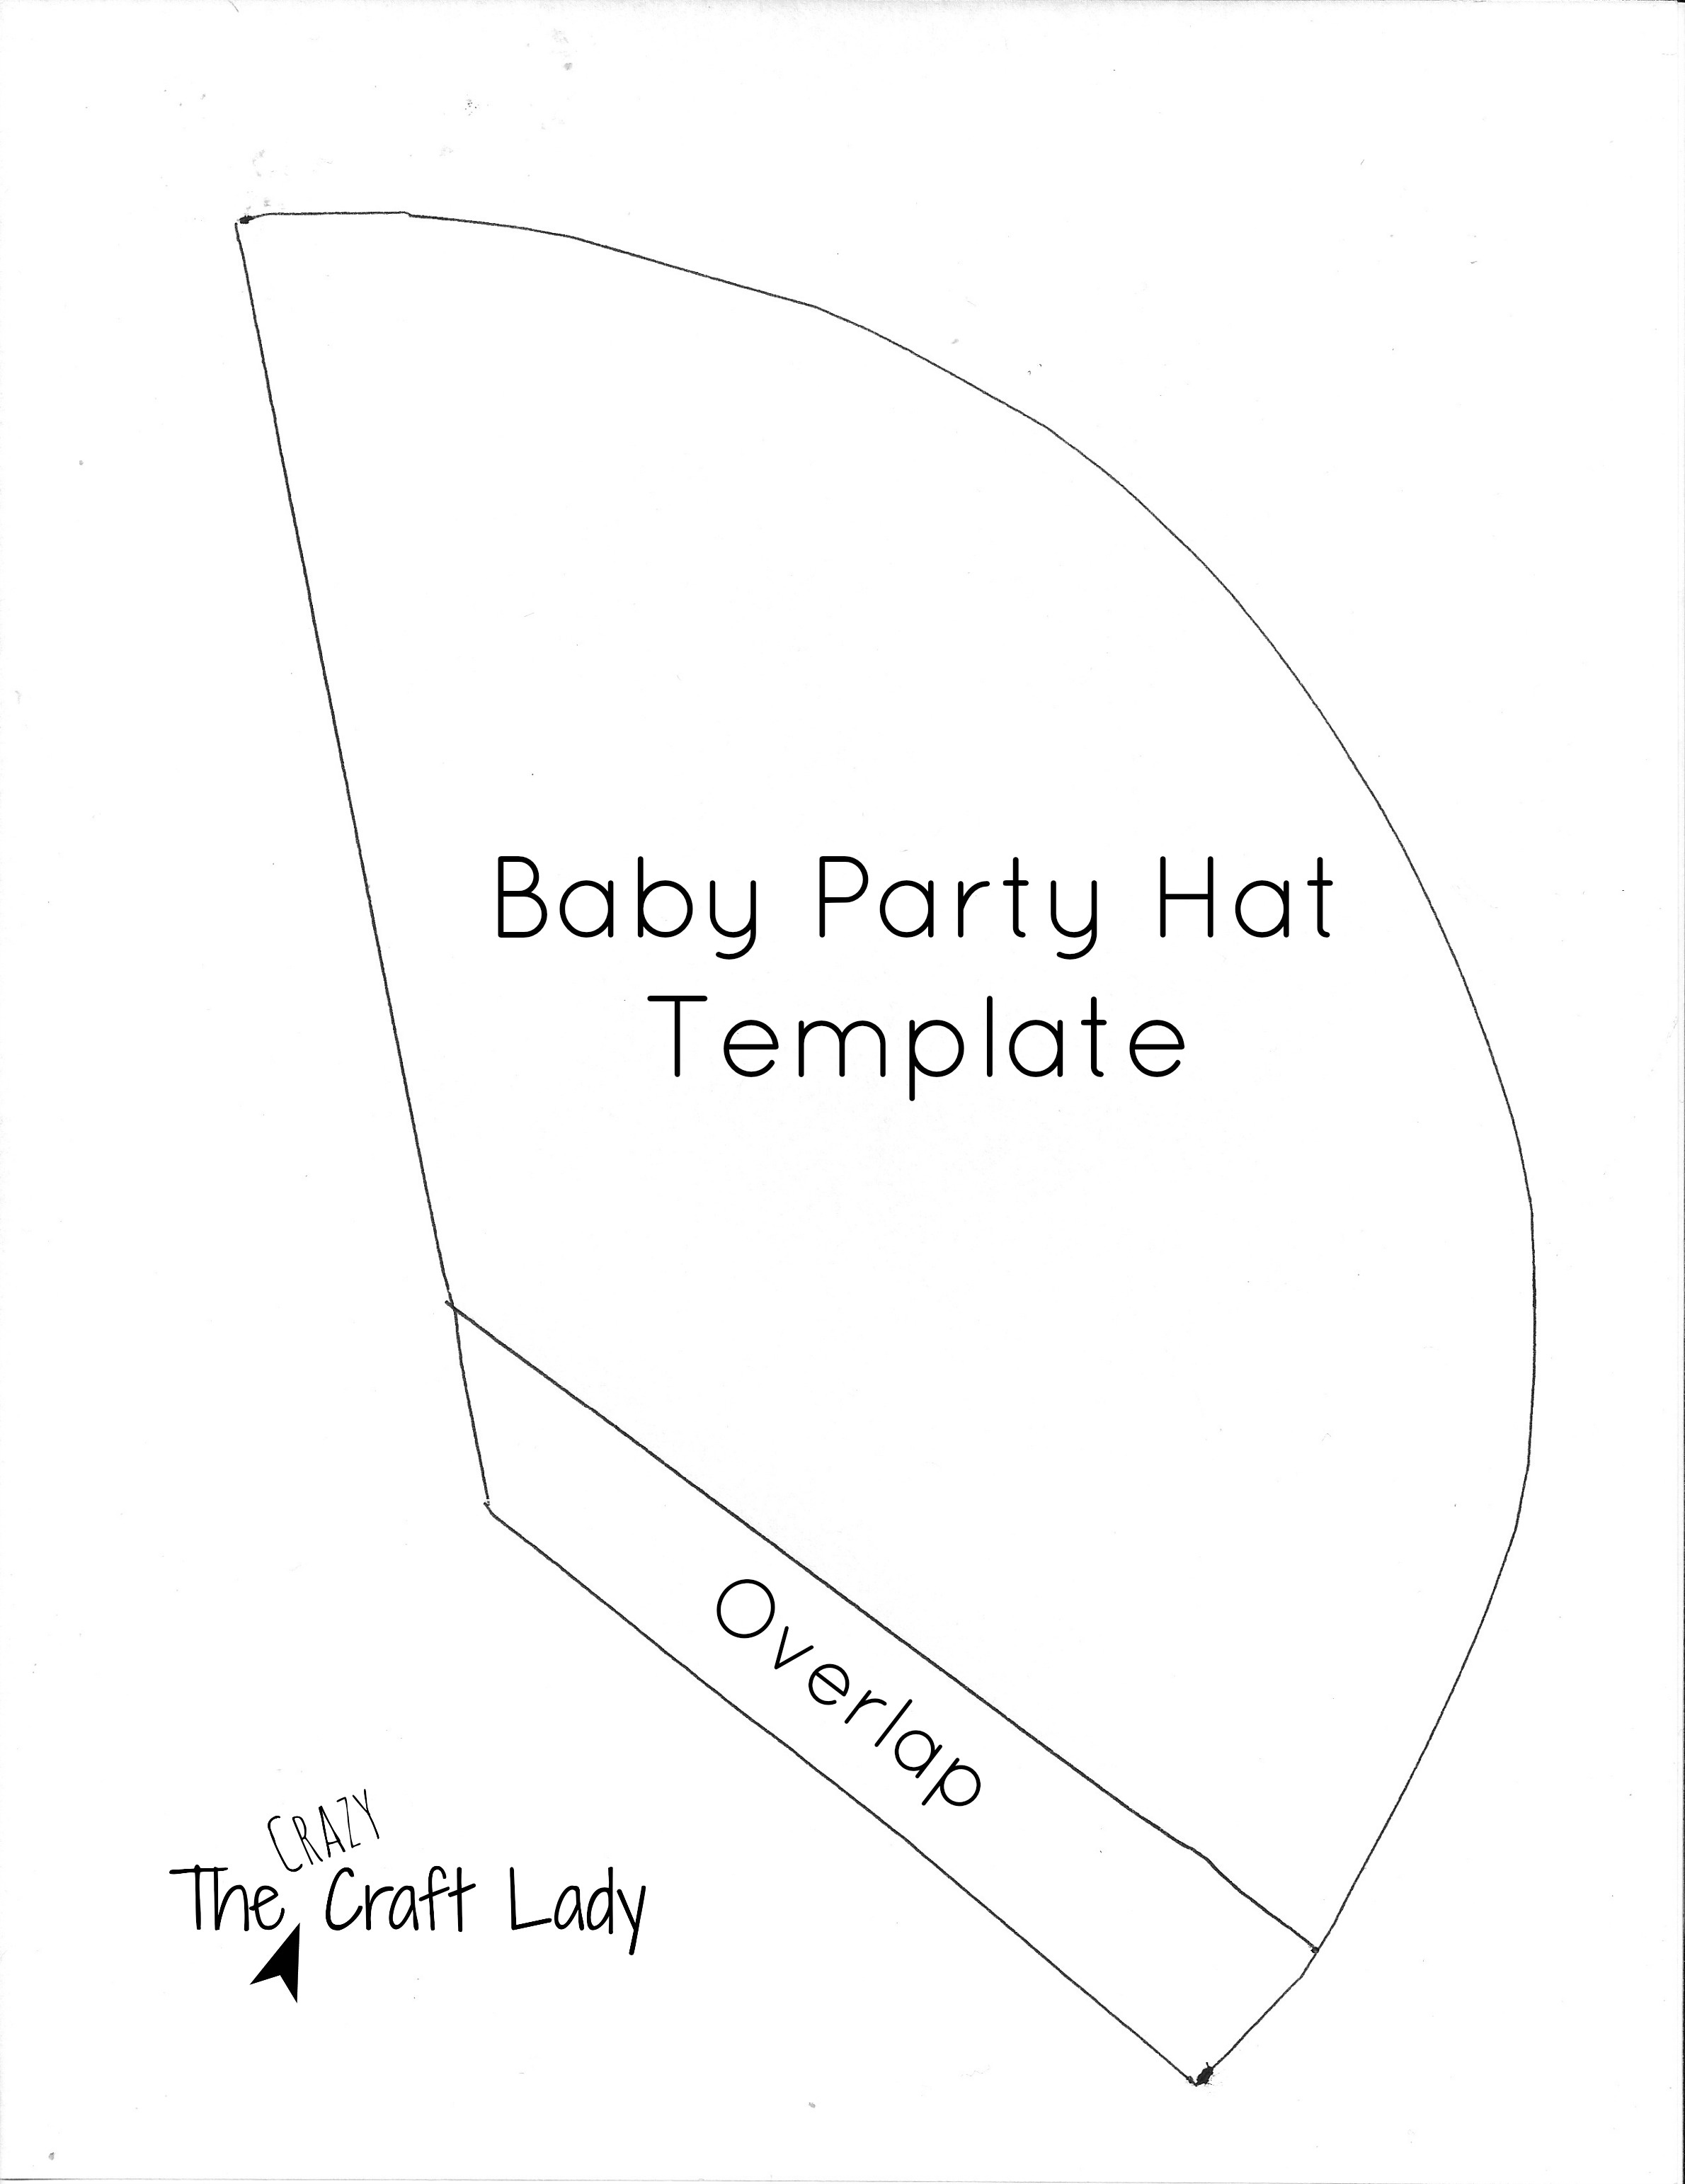 Baby Party Hats And Free Printable Template - The Crazy Craft Lady - Free Printable Party Hat